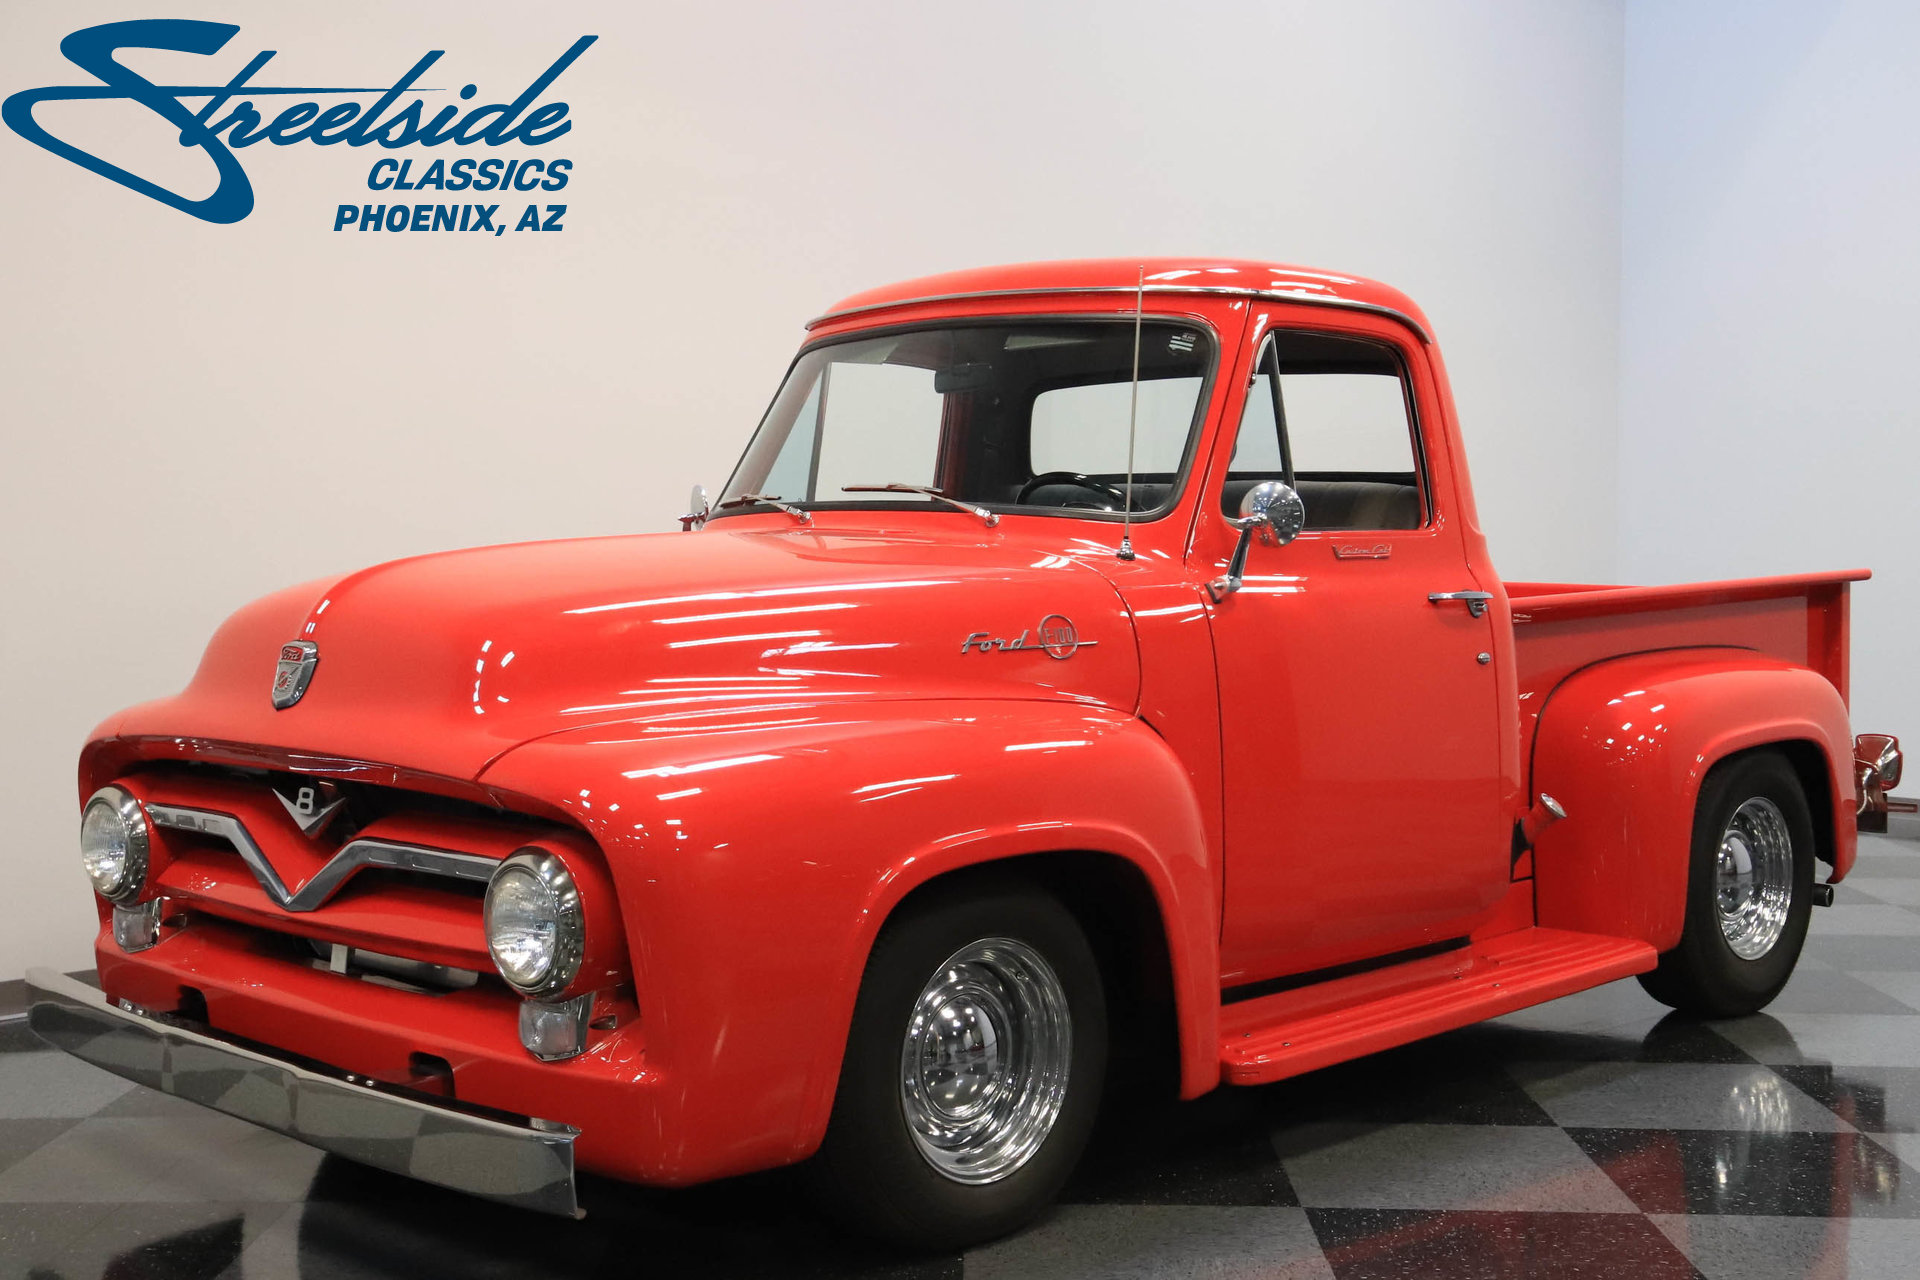 1955 Ford F 100 Streetside Classics The Nations Trusted Classic F100 On 20 Inch Wheels Show More Photos